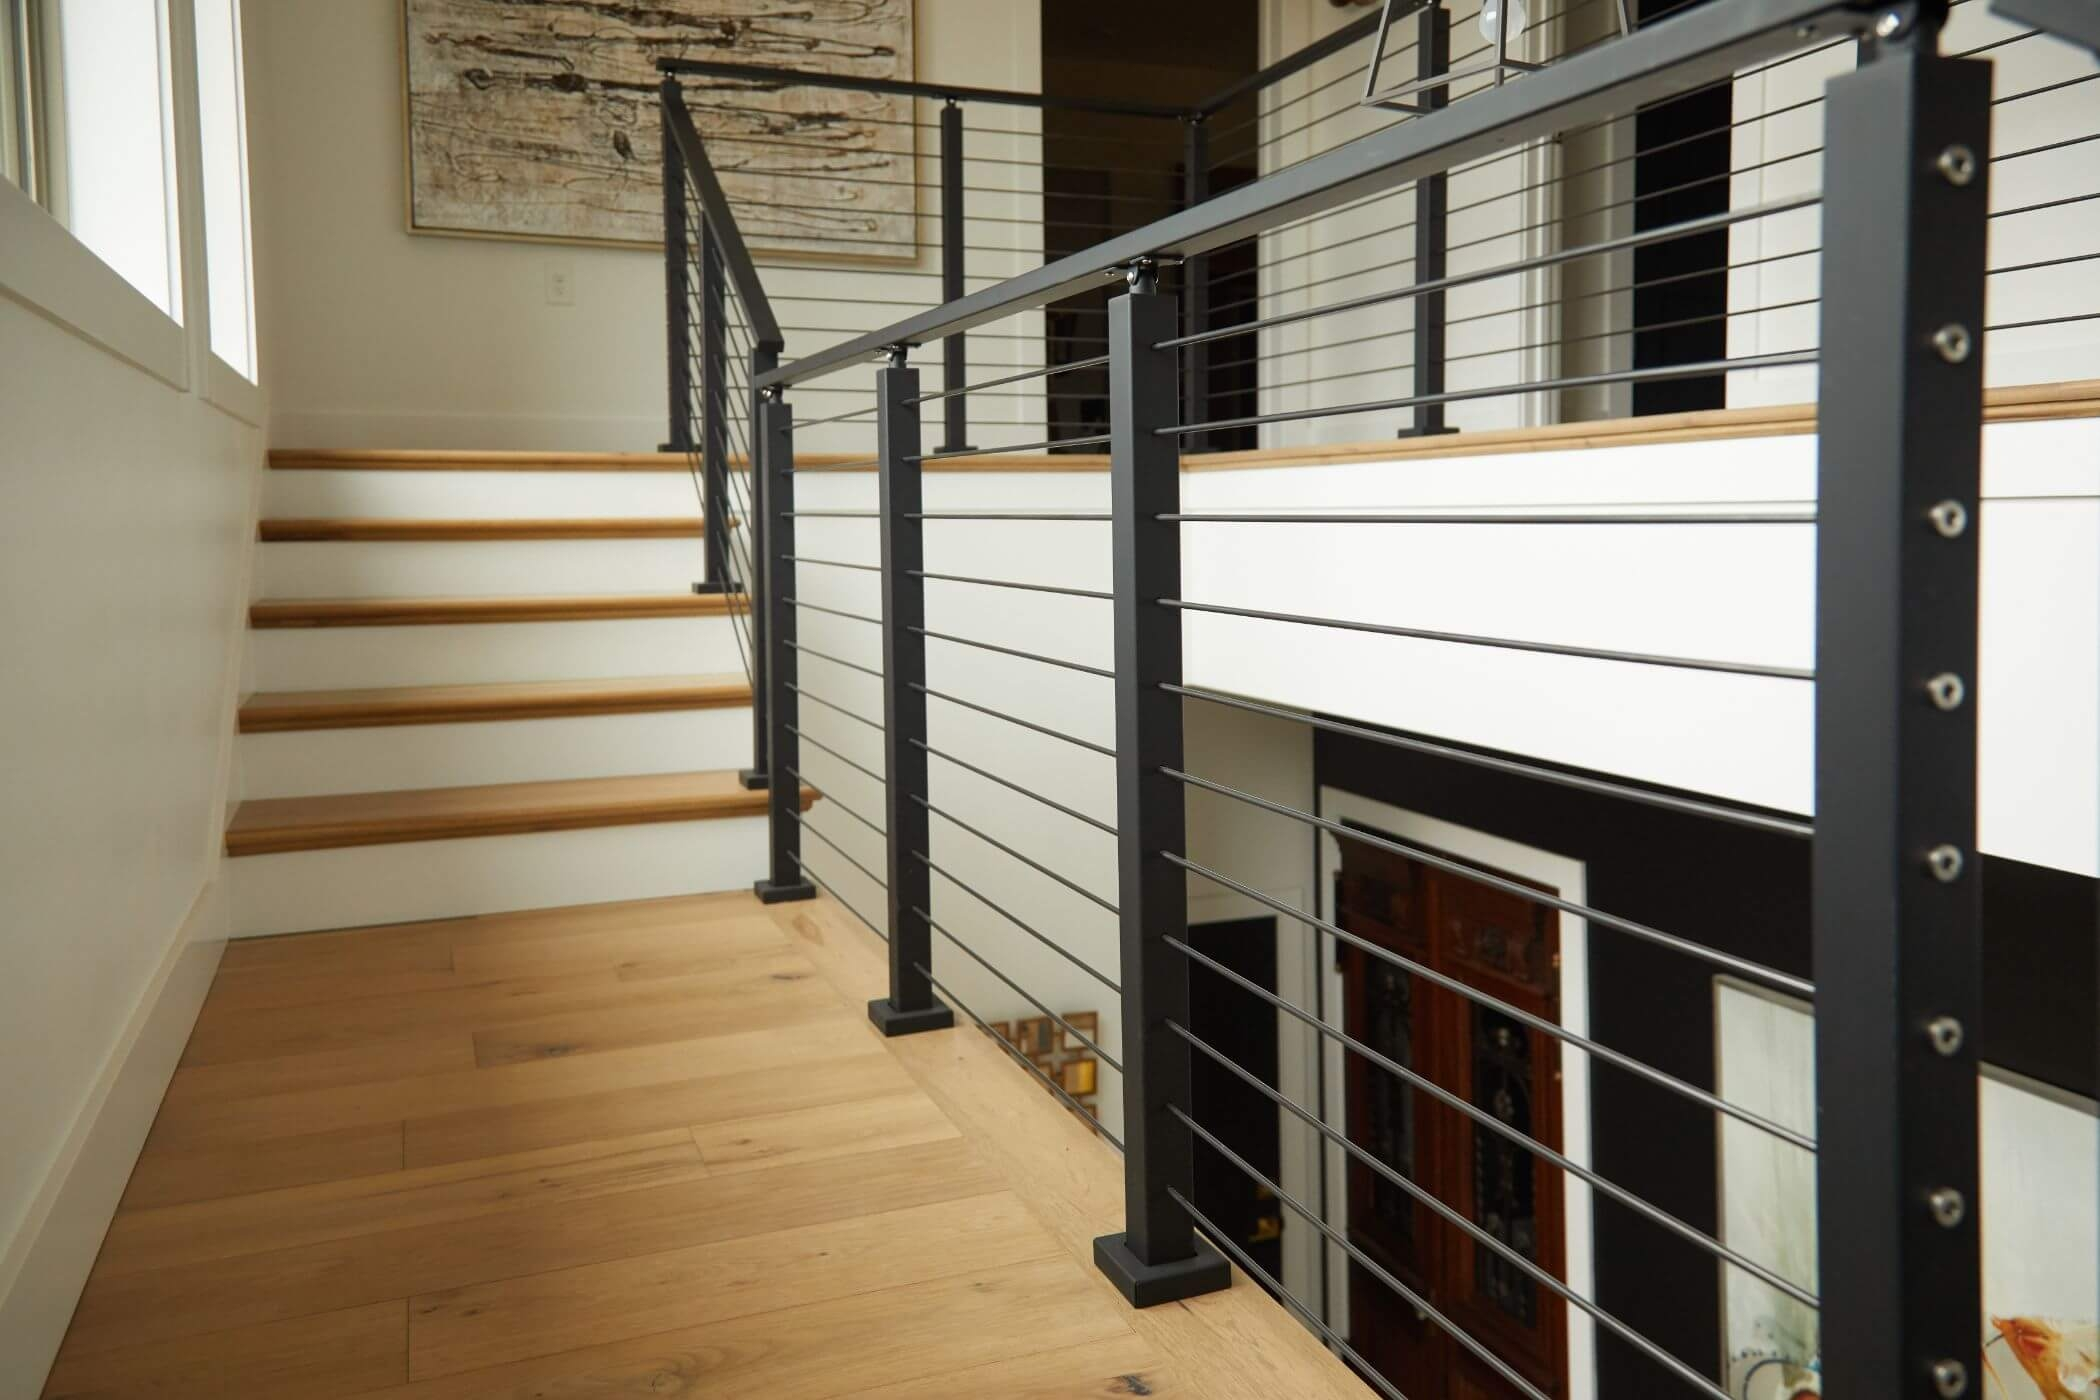 Stainless Steel Railing Rod Stair Railing Kits Posts Parts | Wooden Stair Railing Prices | Staircase Ideas | Deck Railing | Frameless Glass | Steel | Glass Stair